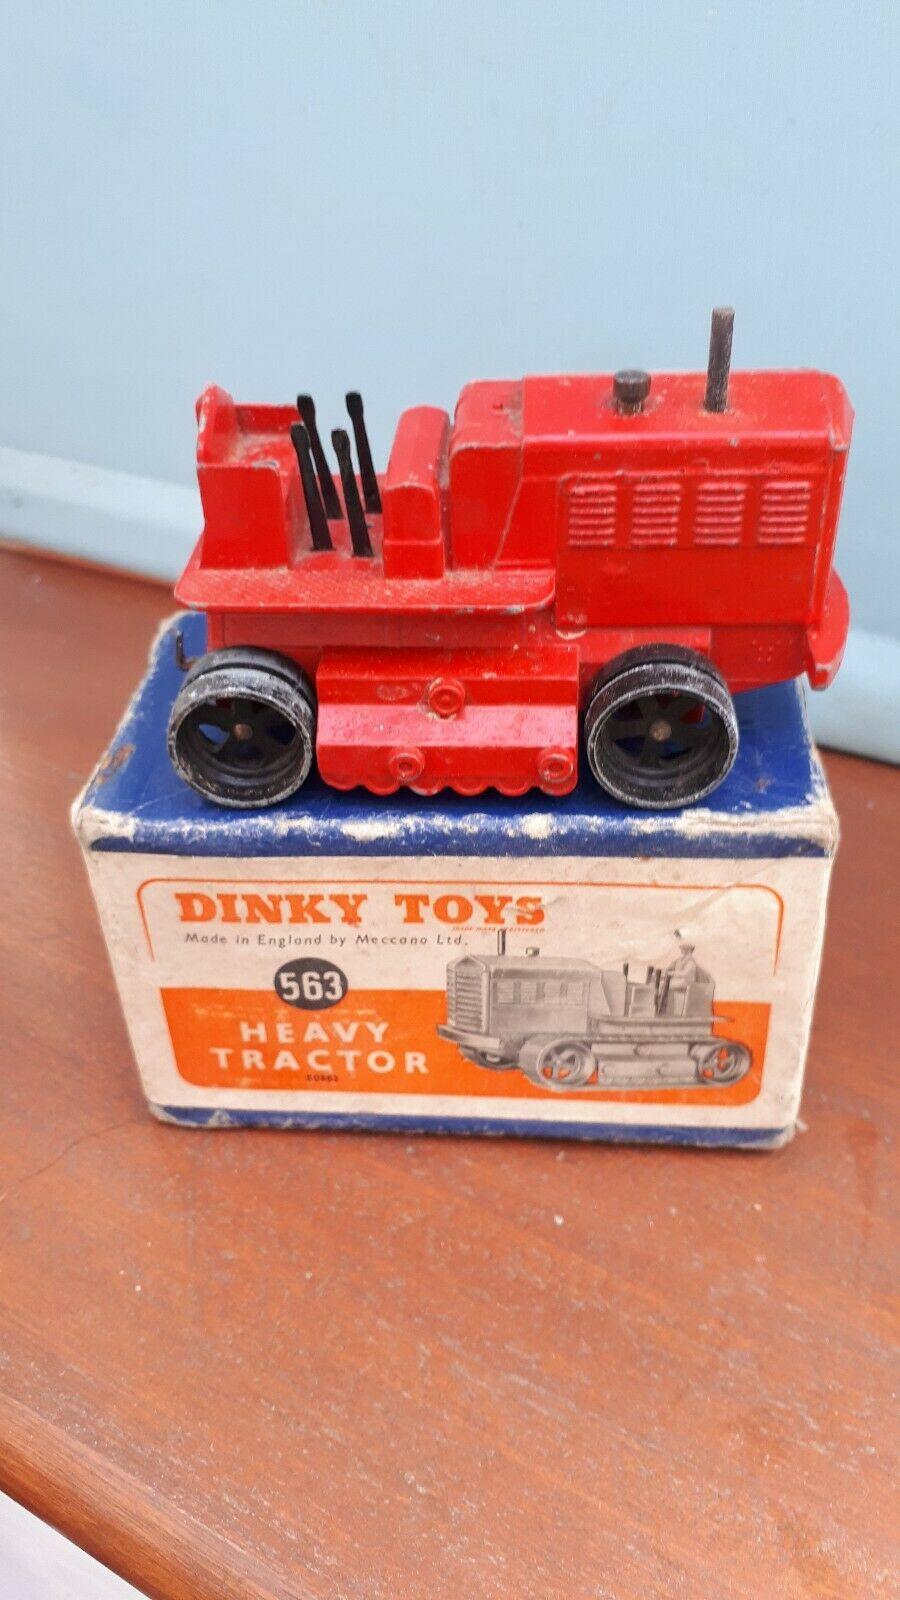 Dinky toys 563 Heavy Tractor In Original Box